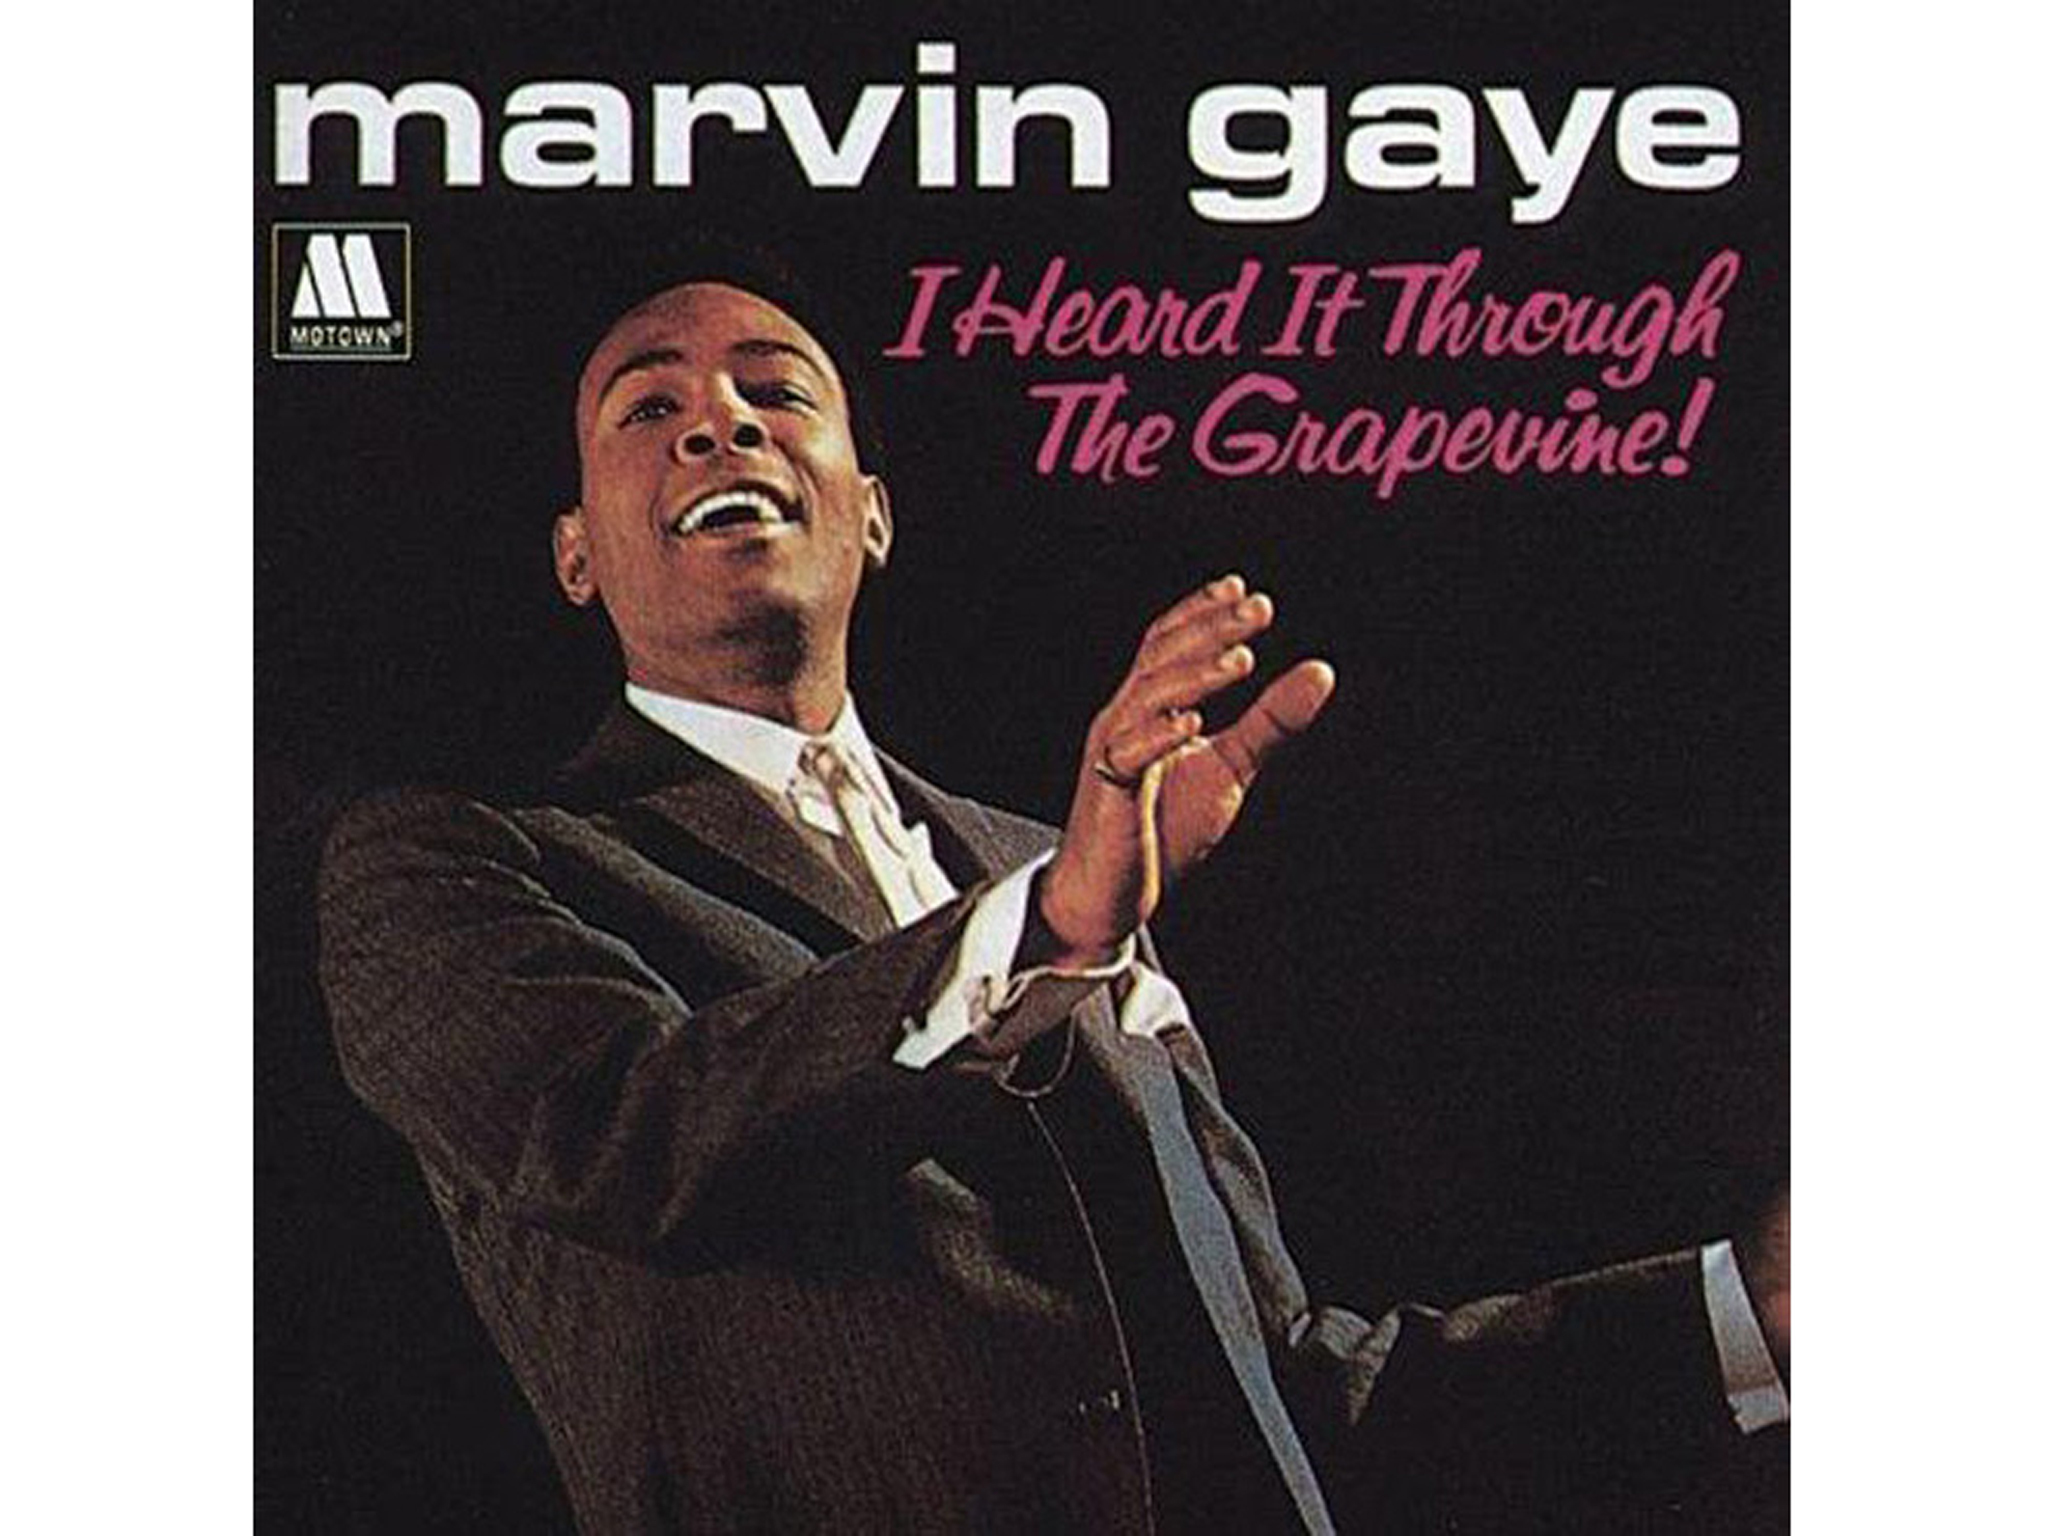 'I Heard It Through the Grapevine' – Marvin Gaye